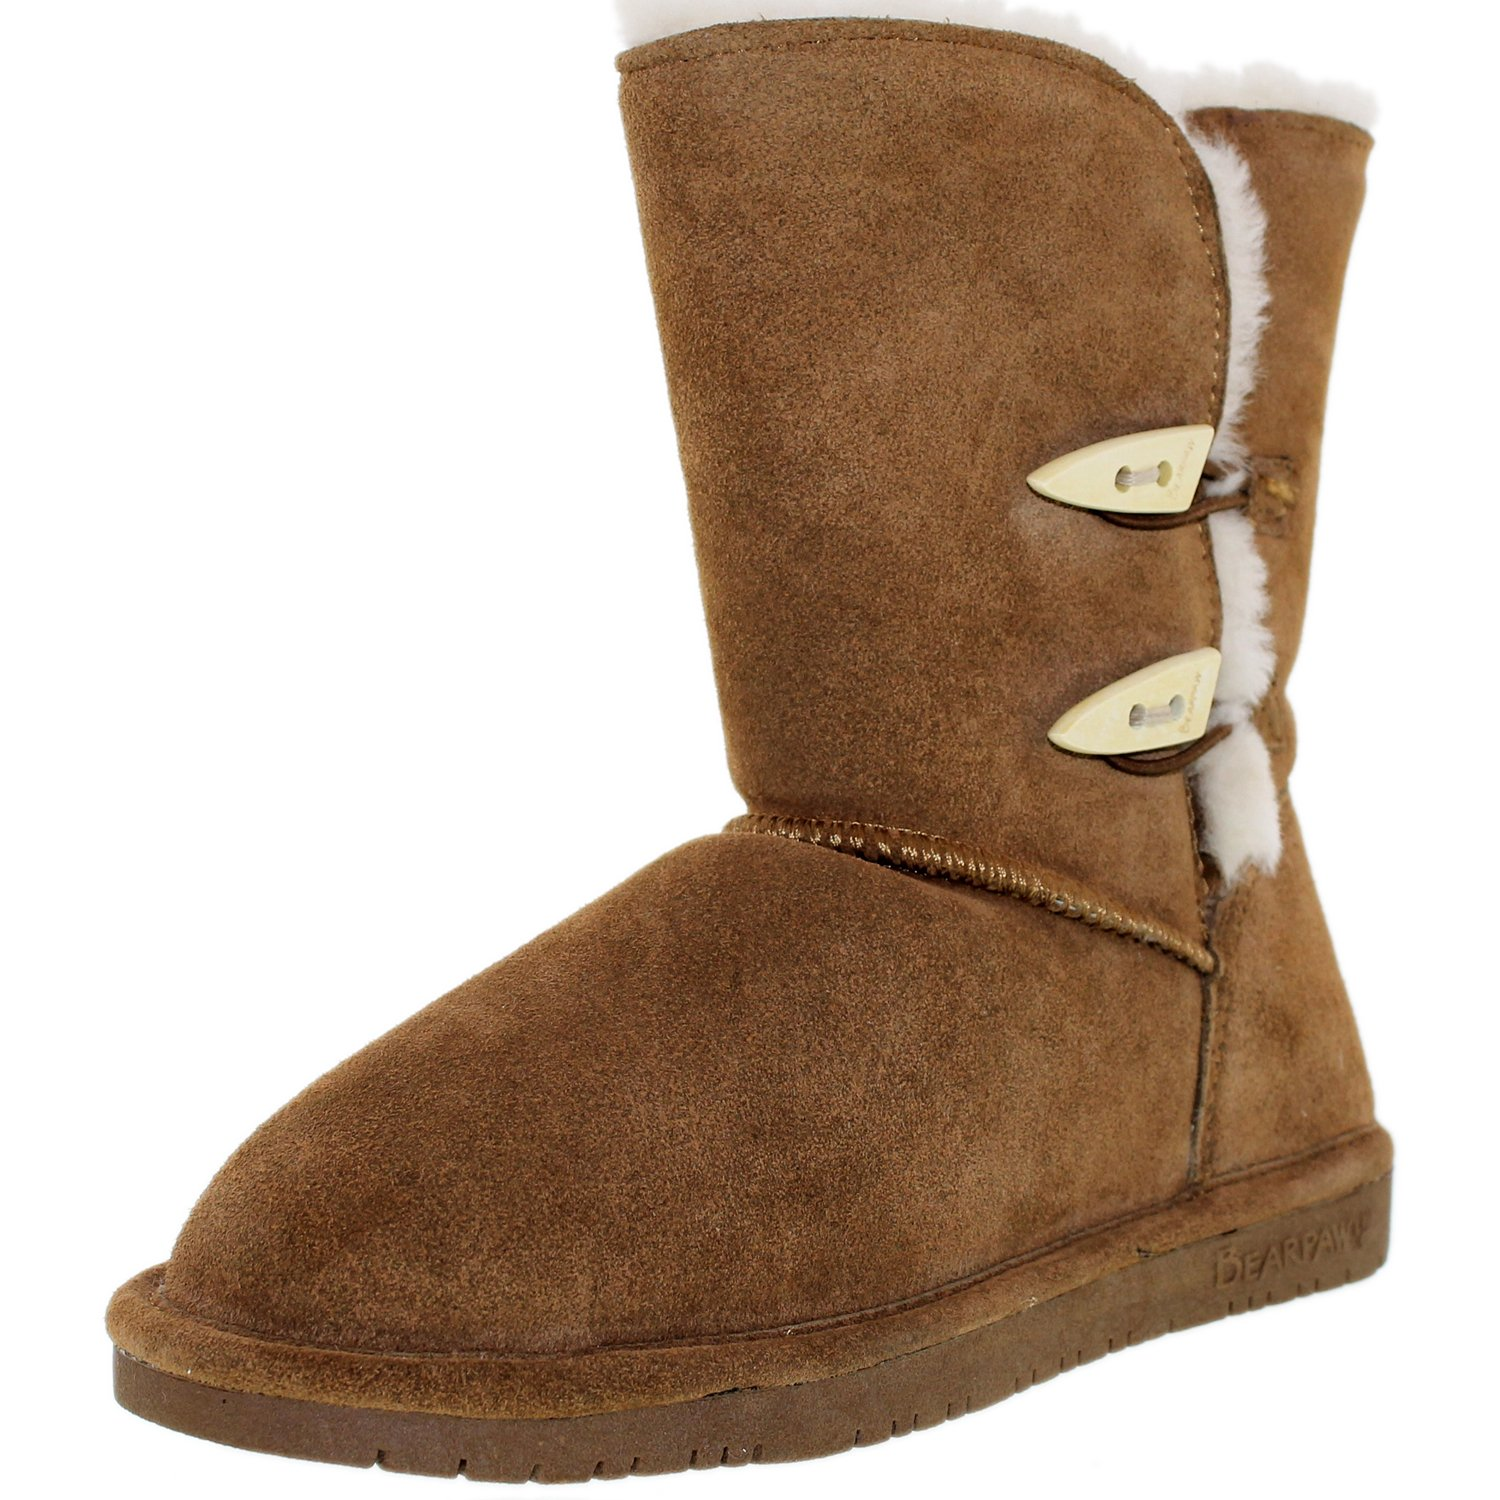 Bearpaw Women's Abigail Hickory Ankle-High Suede Boot - 11M